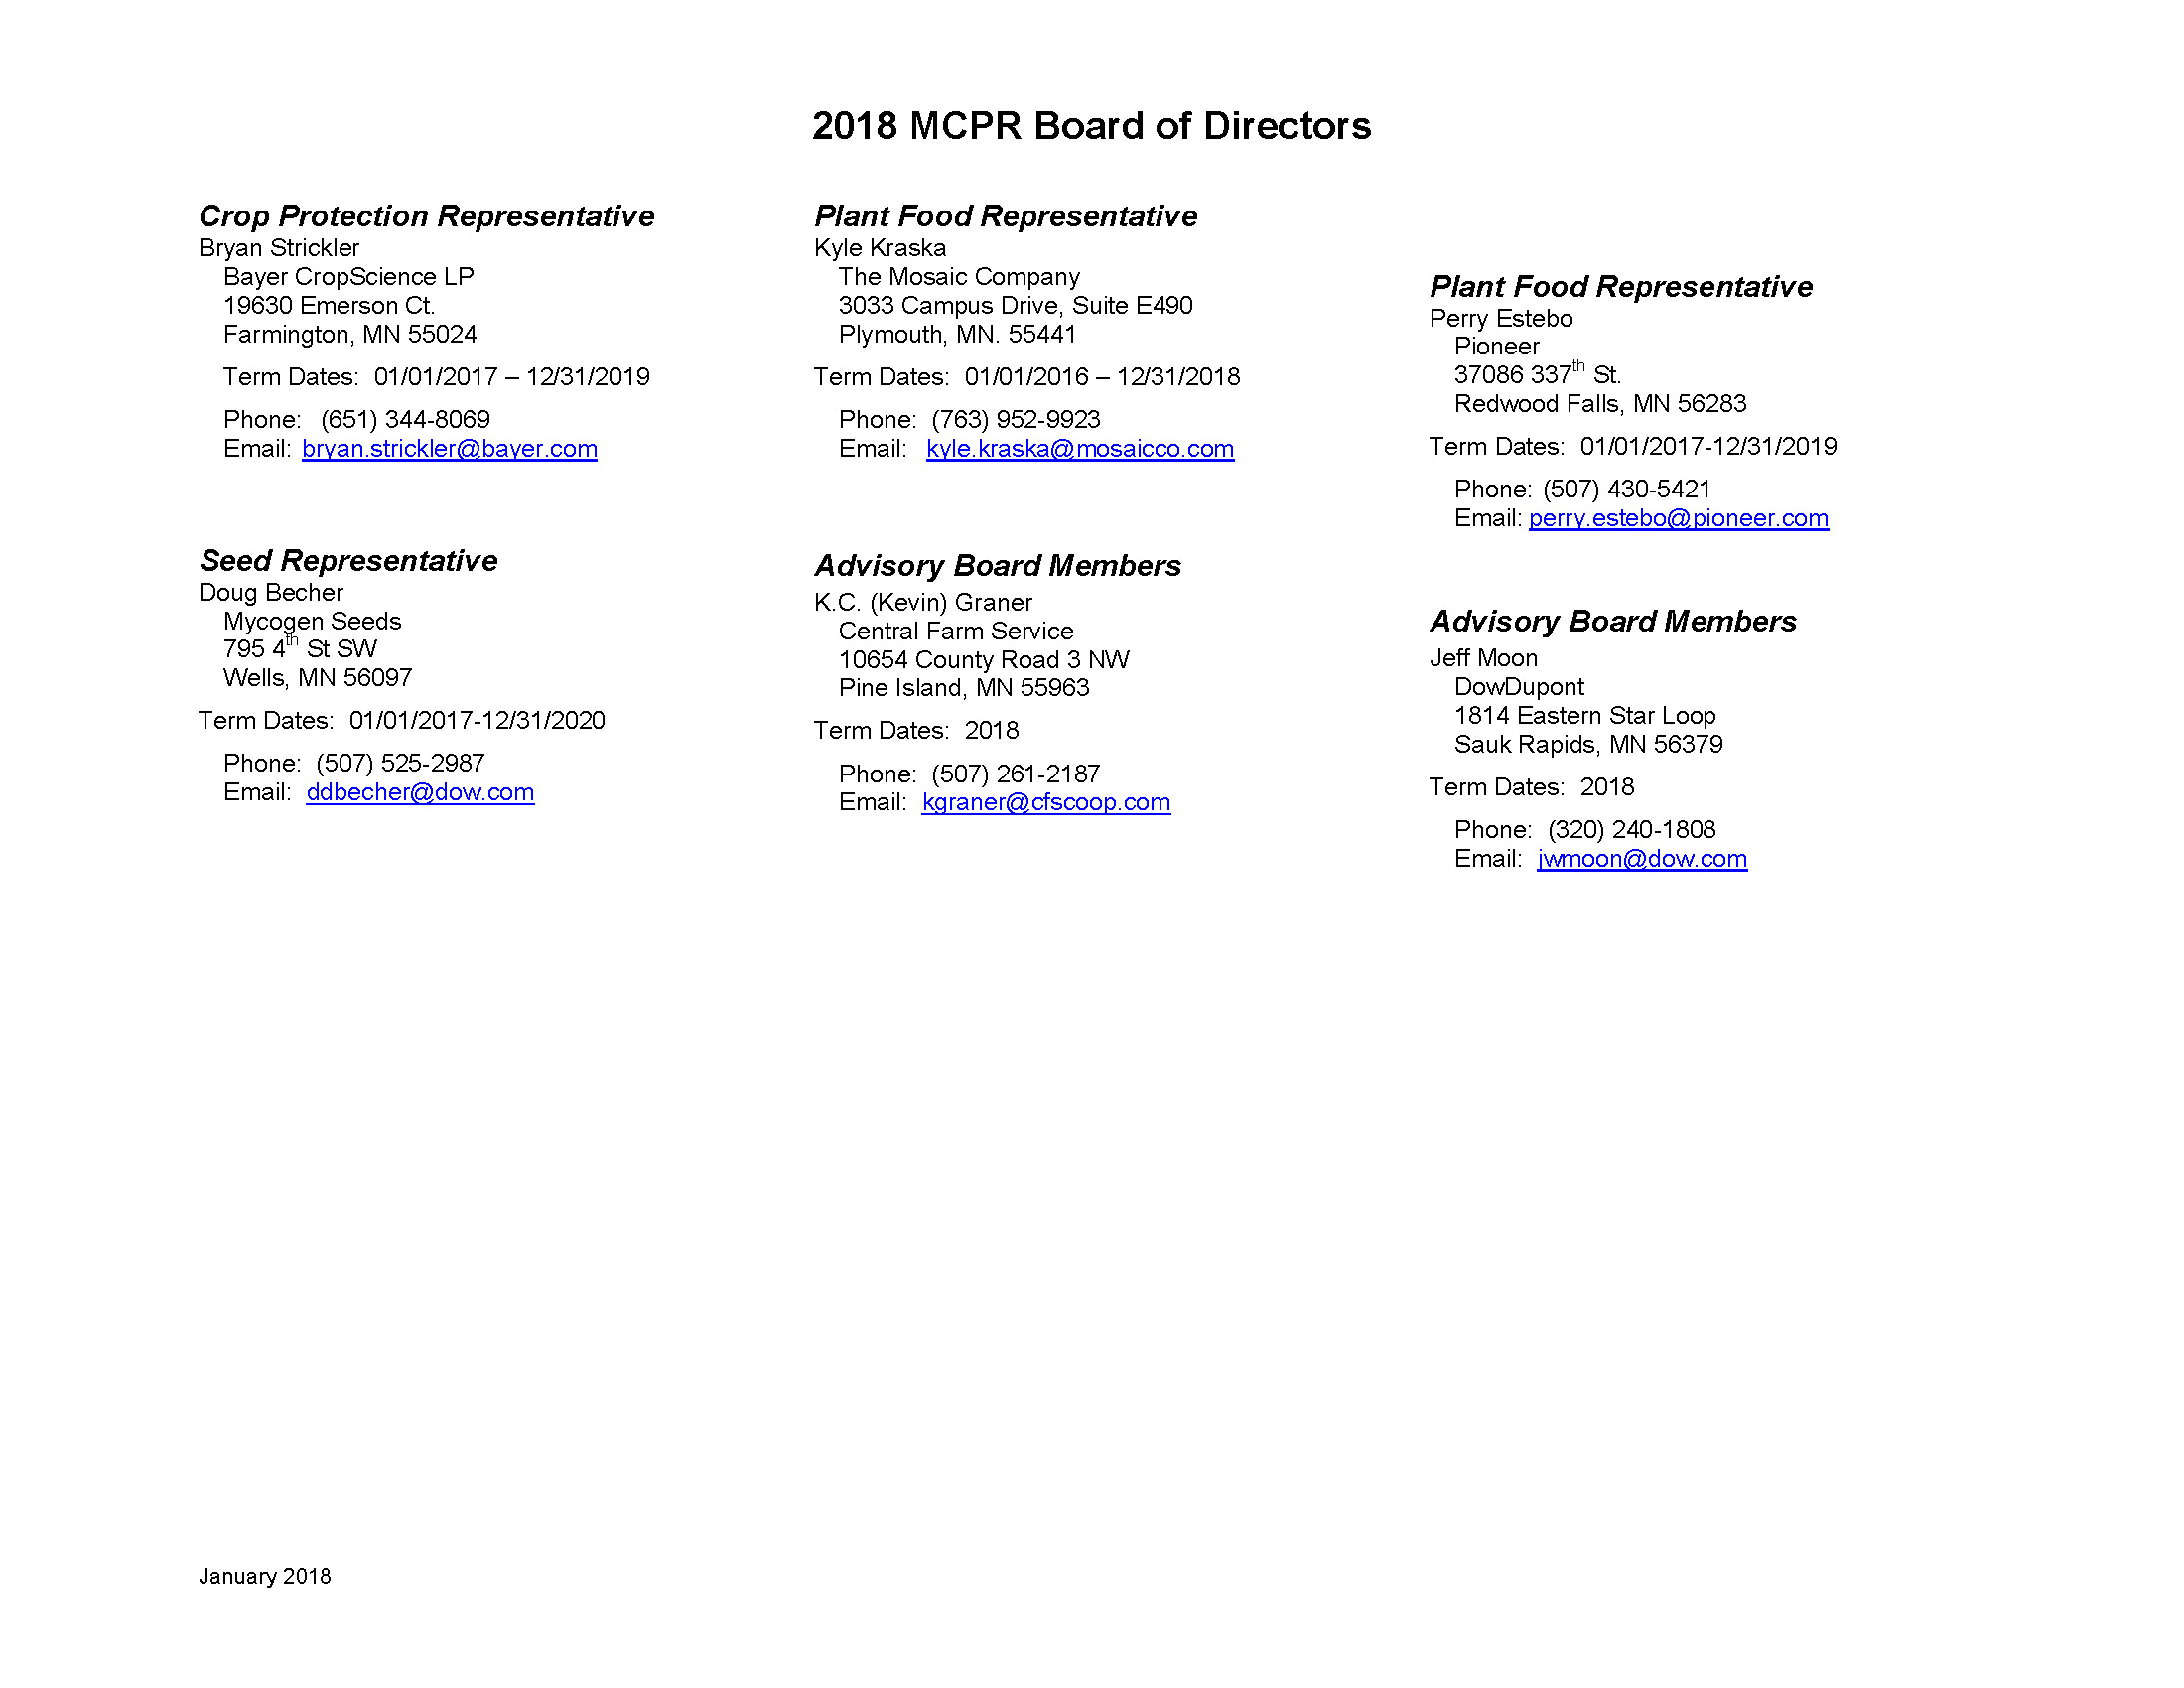 2018 MCPR Board of Directors_August2018_Page_2